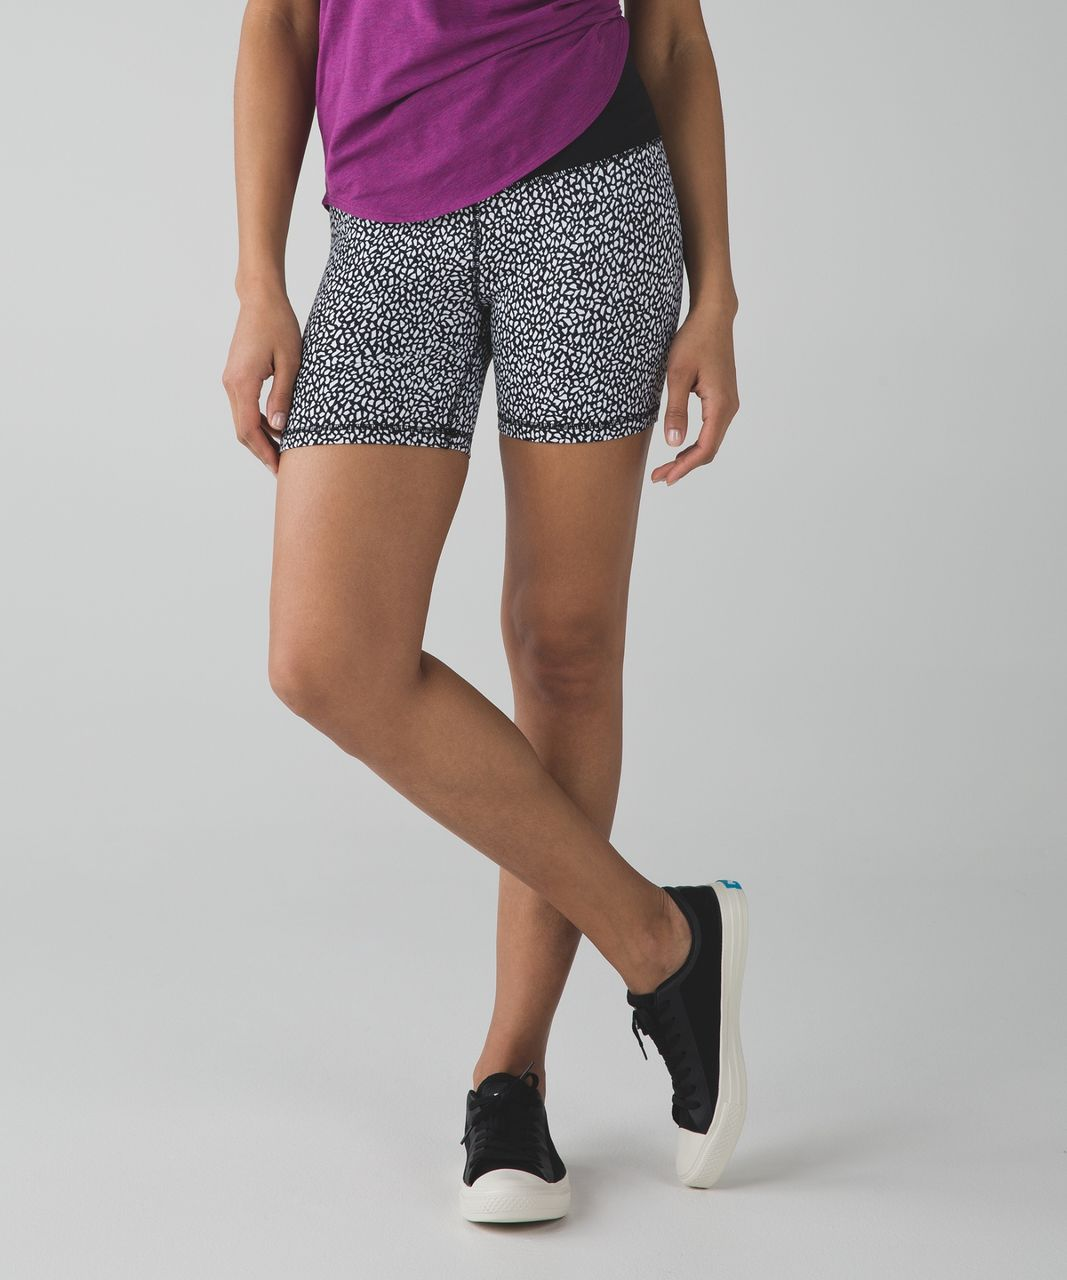 Lululemon Groove Short II (Regular) *Full-On Luon - Miss Mosaic Black / Black